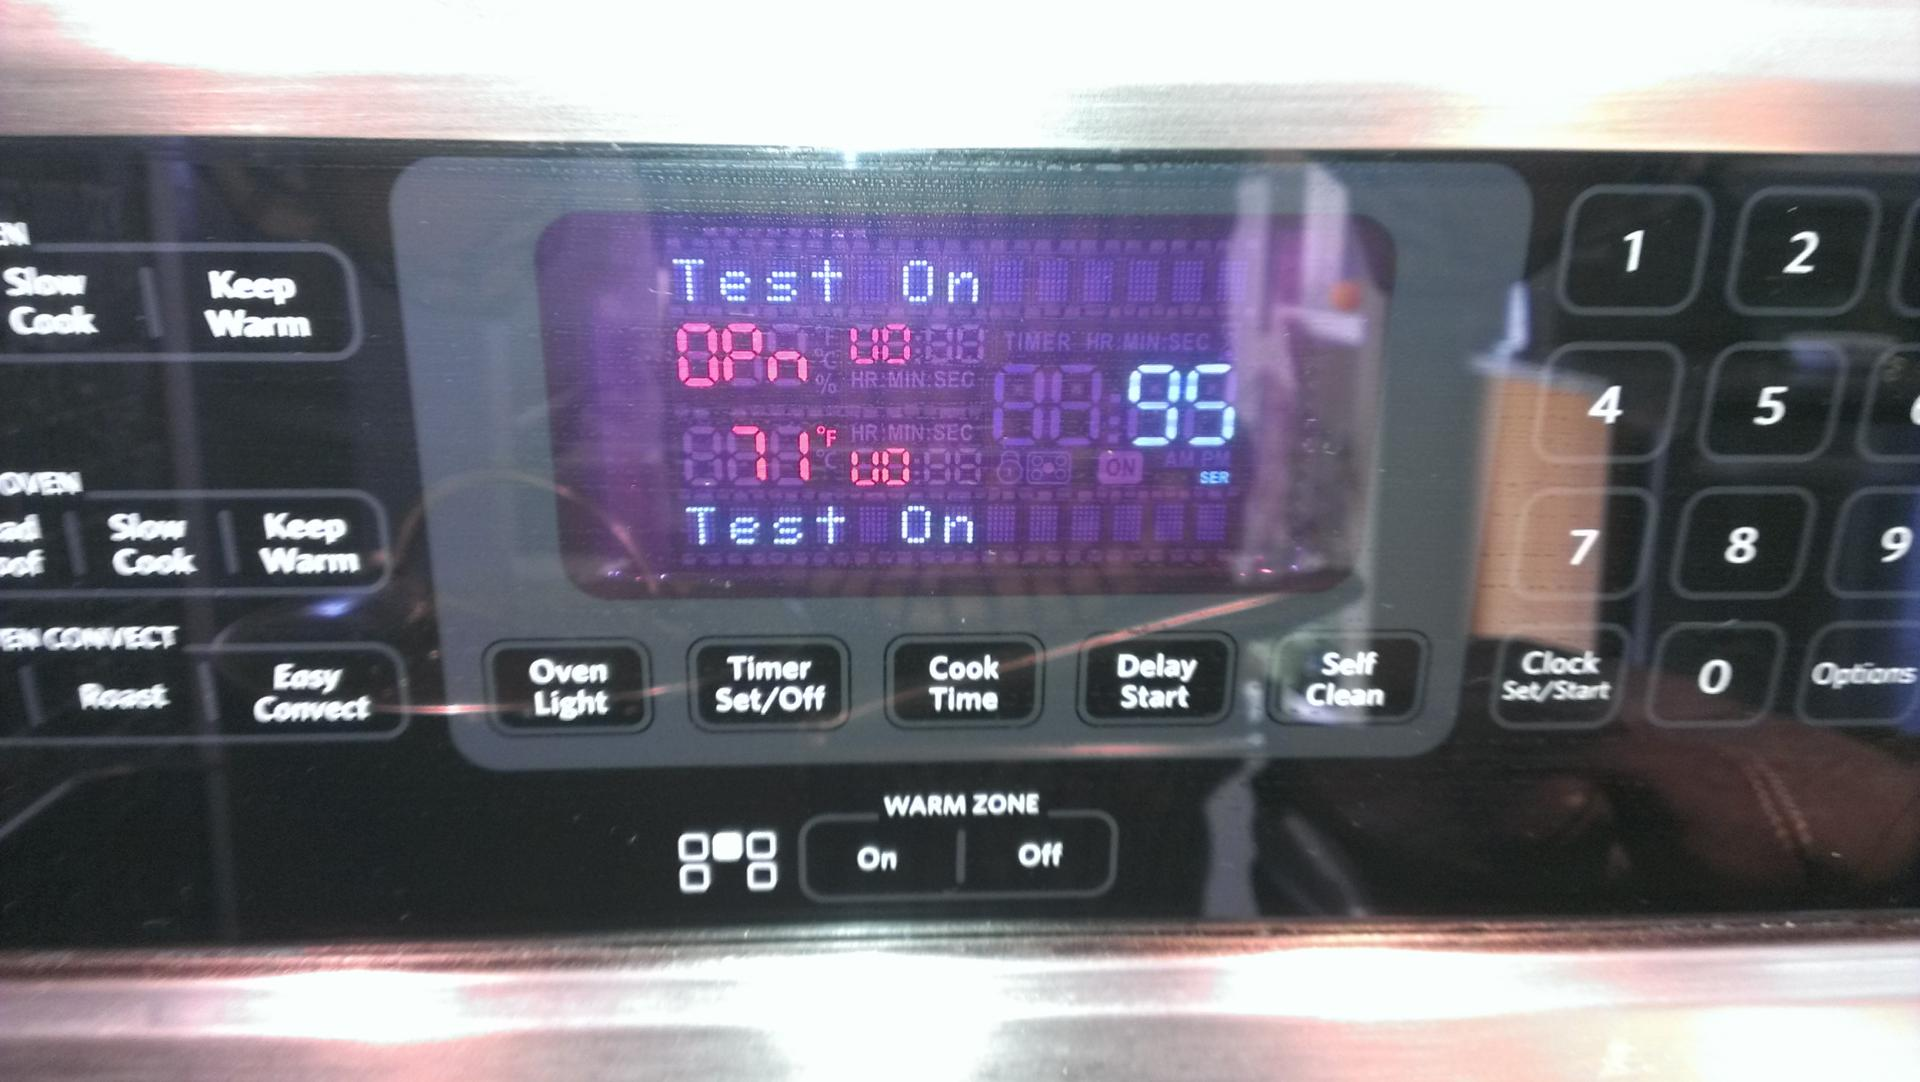 Feature Not Available - when oven started